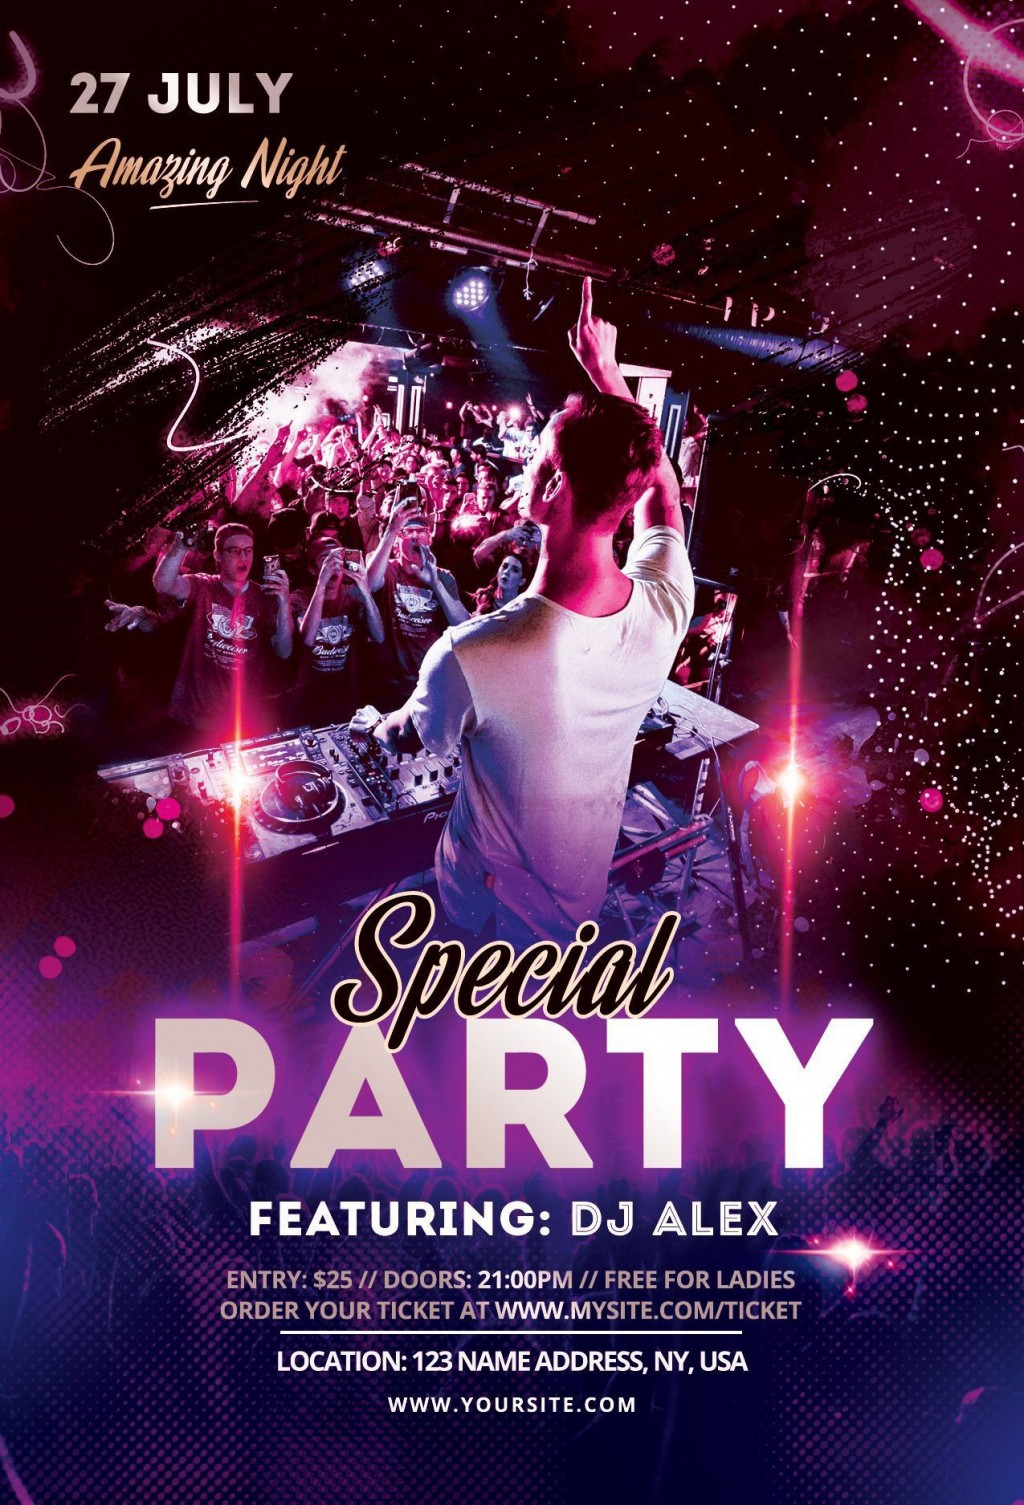 002 Staggering Club Party Flyer Template Free Picture Large